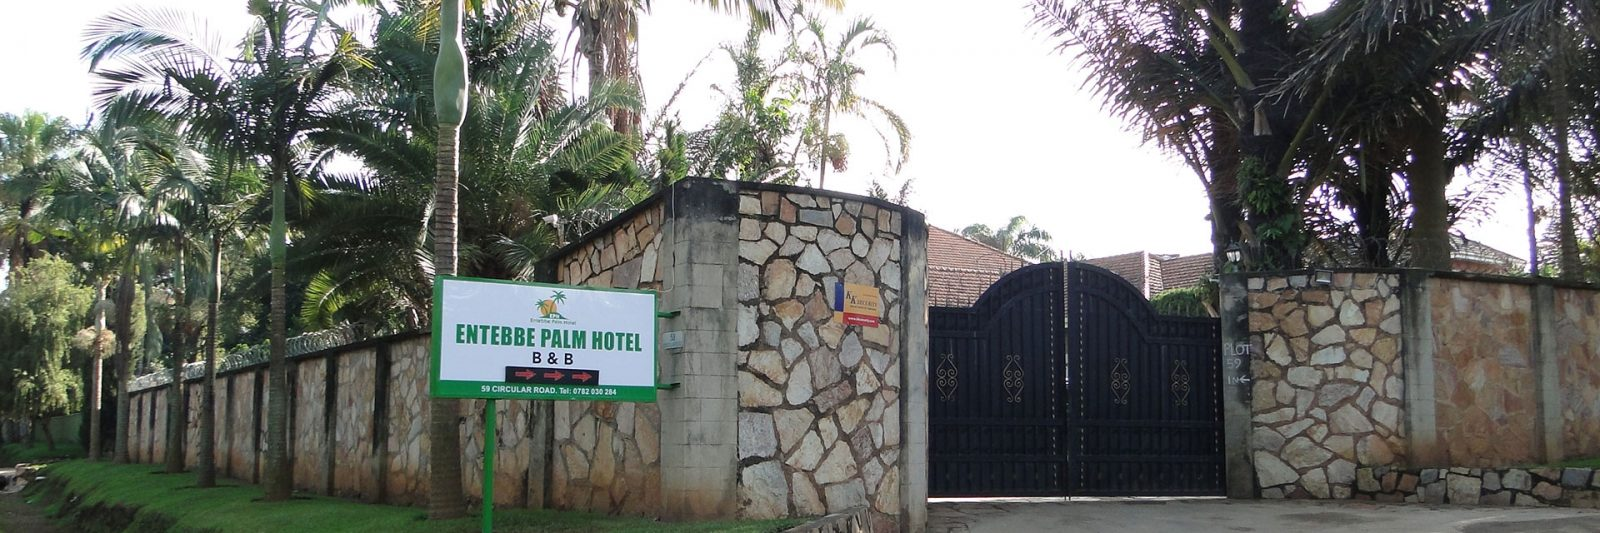 Contact Entebbe Palm hotel